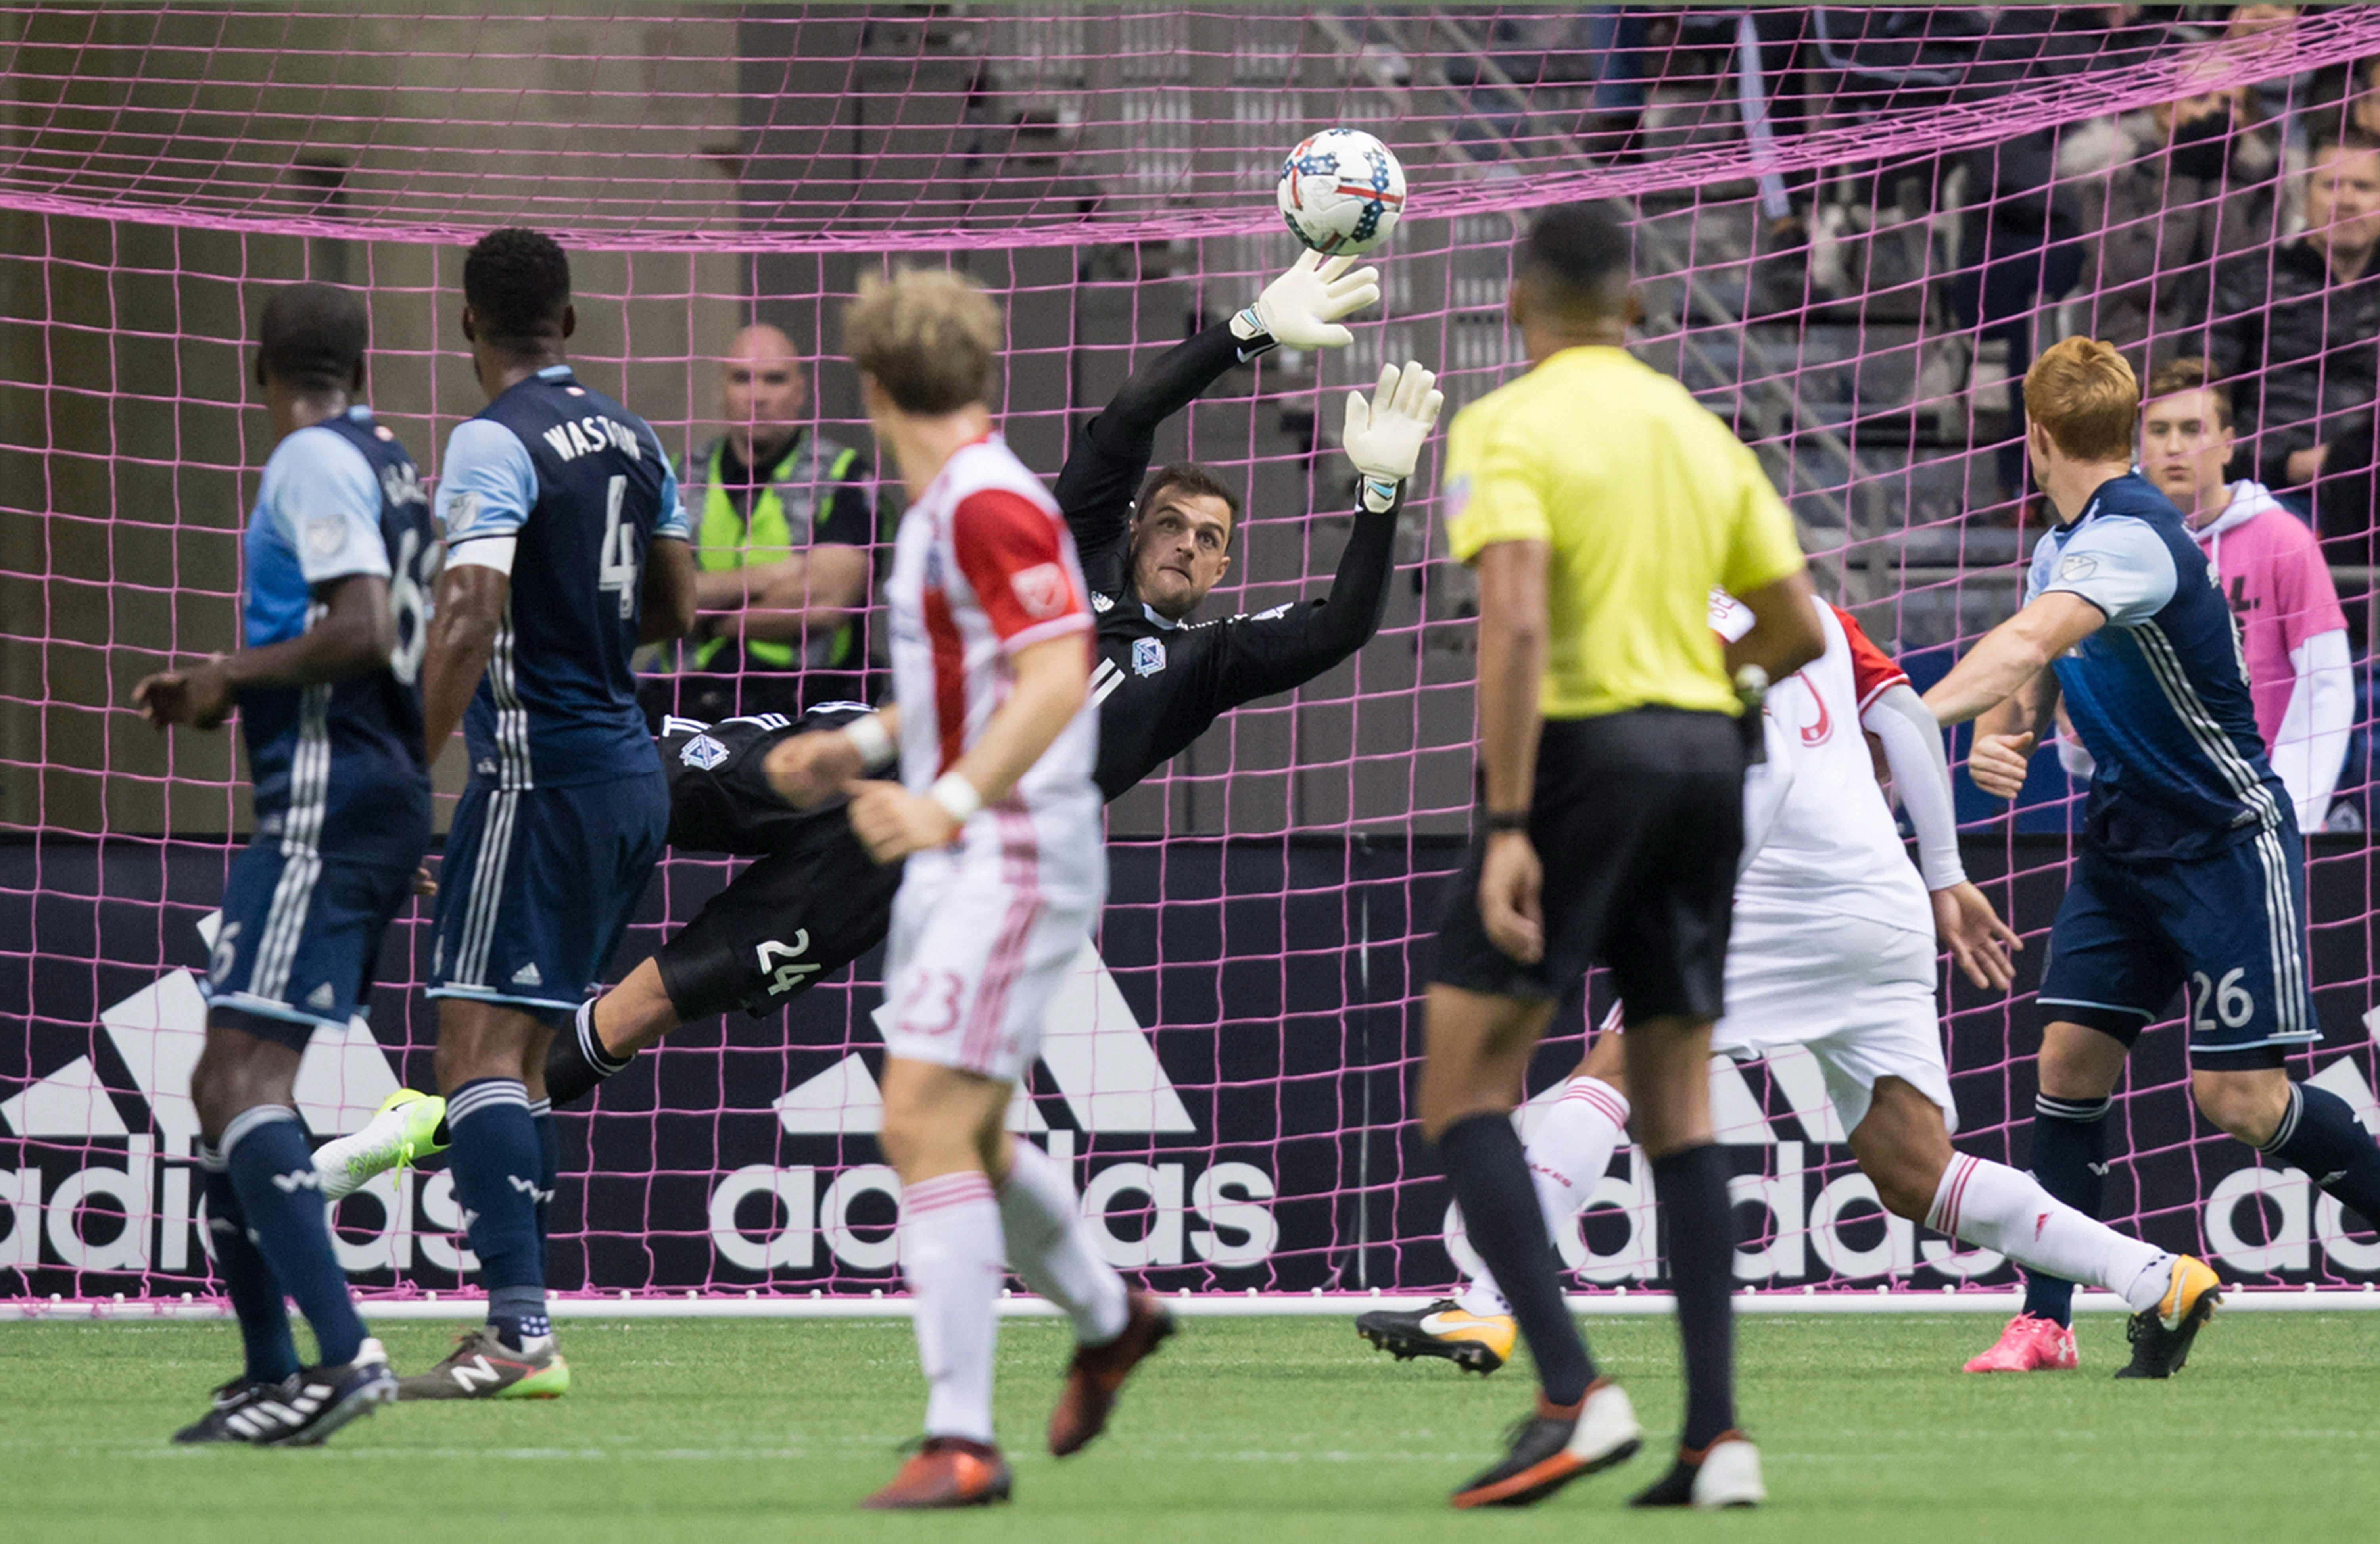 Whitecaps need to rebound quickly from deflating draw vs. Earthquakes